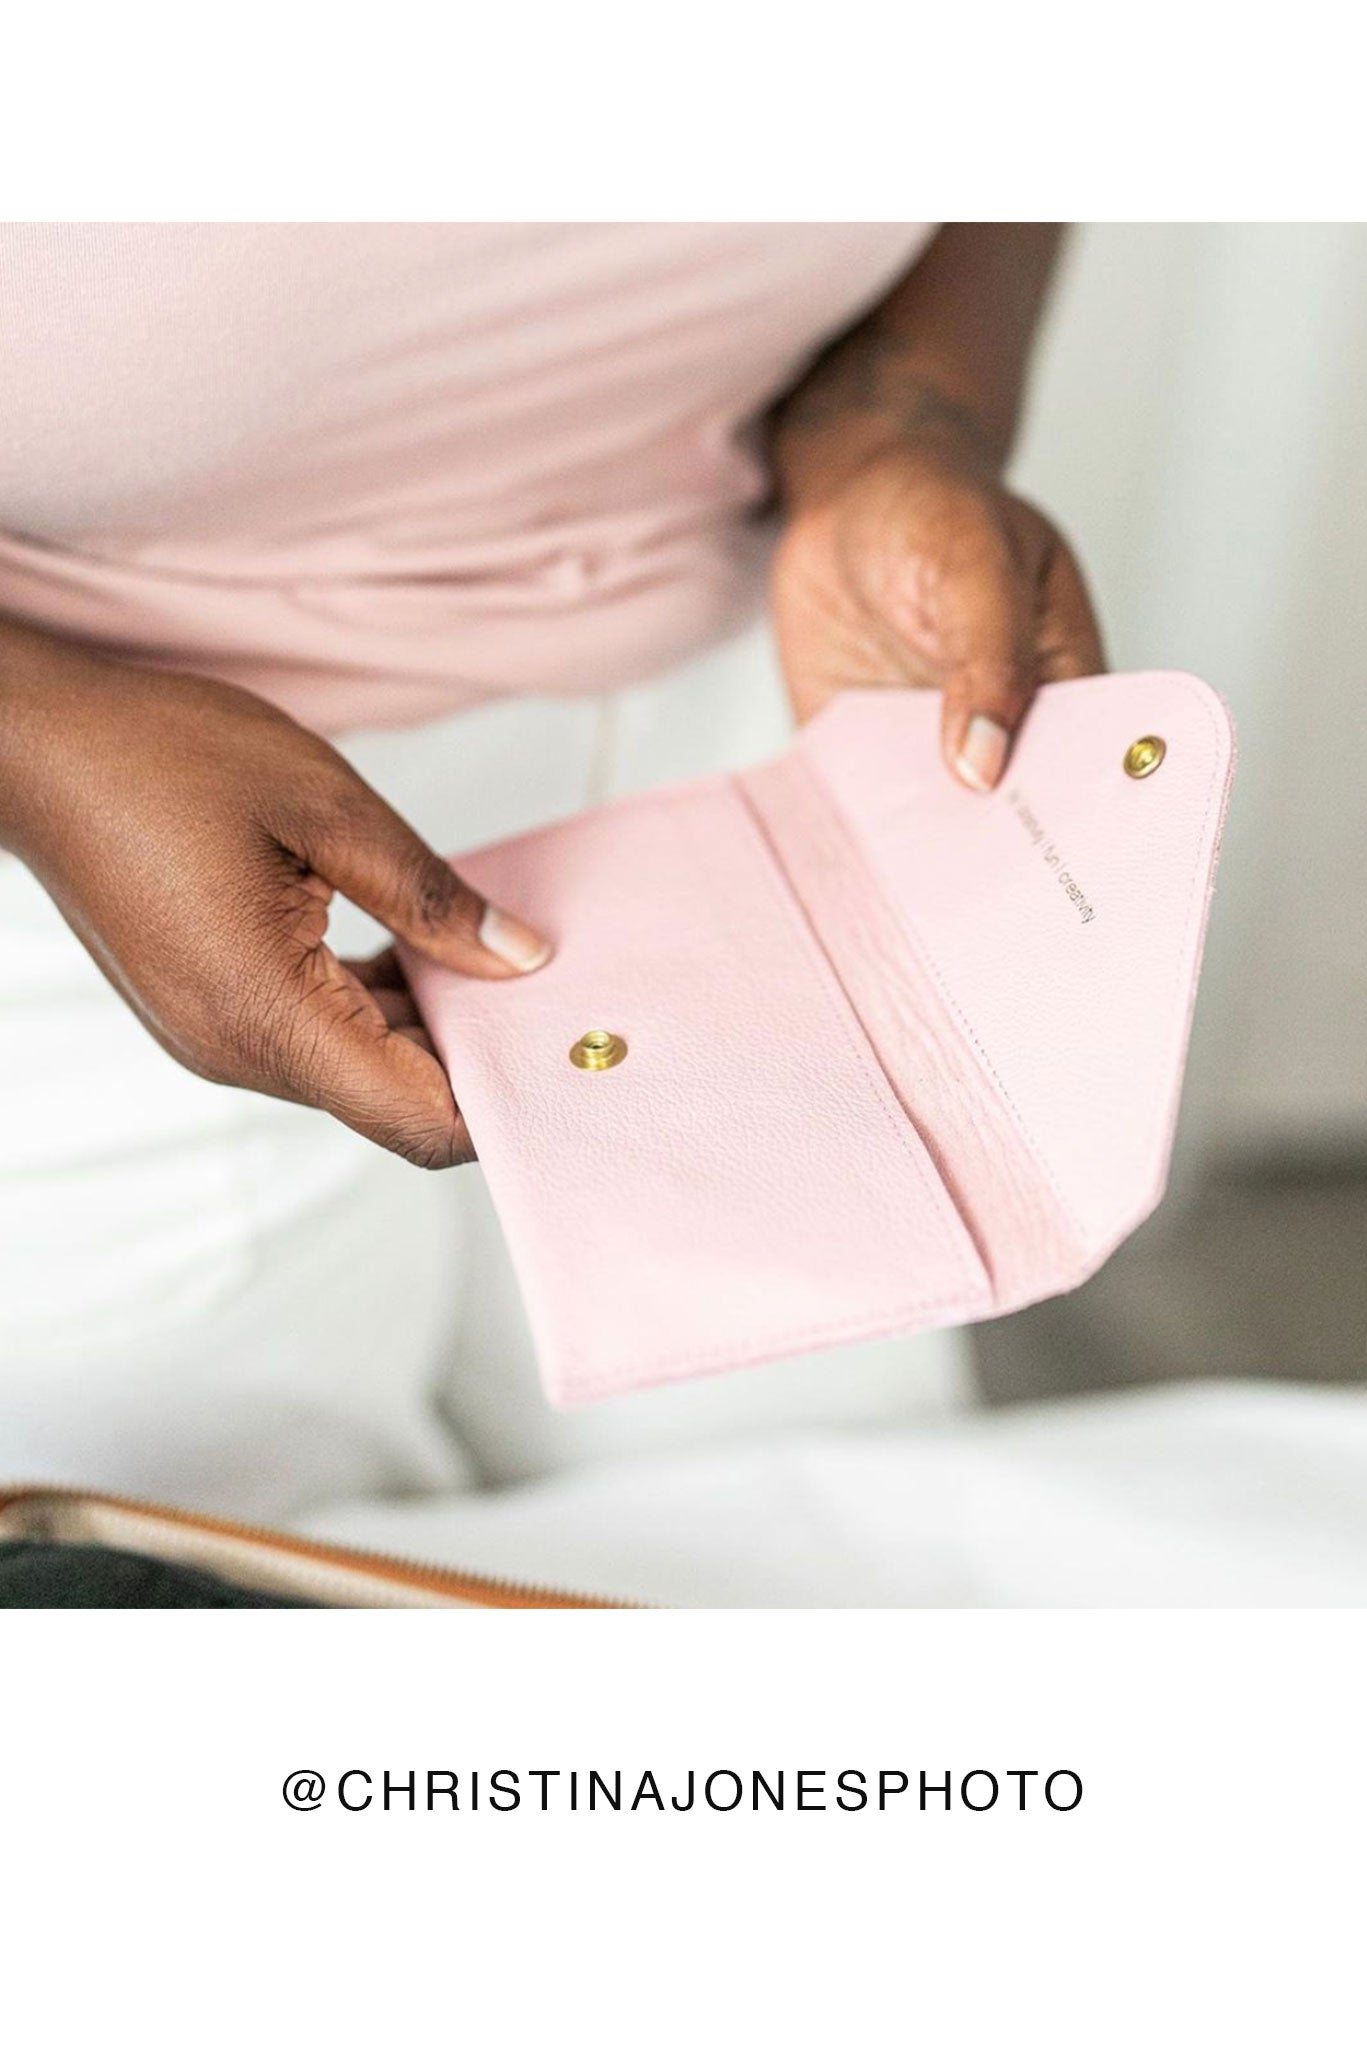 FOTO | Rose Memory Card Wallet - a pink pebbled leather SD and Compact Flash Memory Card holder that coordinates with our Rose Designer Fotostrap camera strap and can be personalized with a monogram or business logo, making it the perfect gift for the photographer in your life!